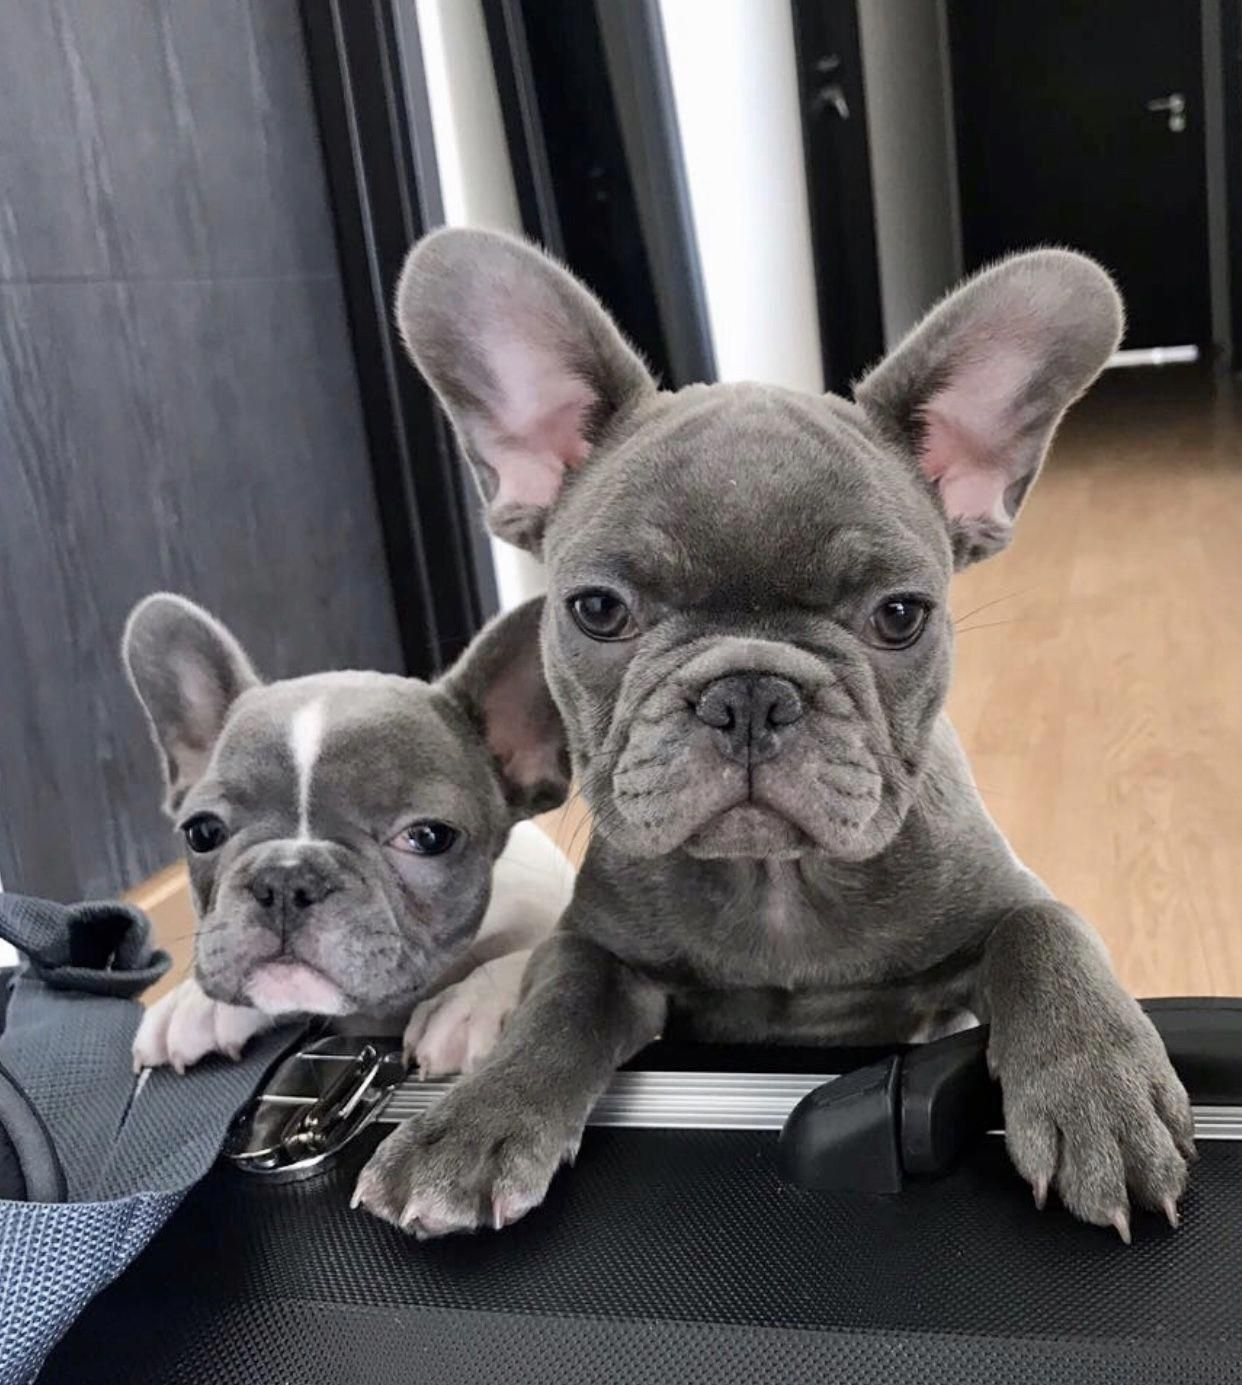 These Two Cuties Enjoying Their New Family Www Poeticfrenchbulldogs Com French French Bulldog Puppies French Bulldog Funny Blue French Bulldog Puppies